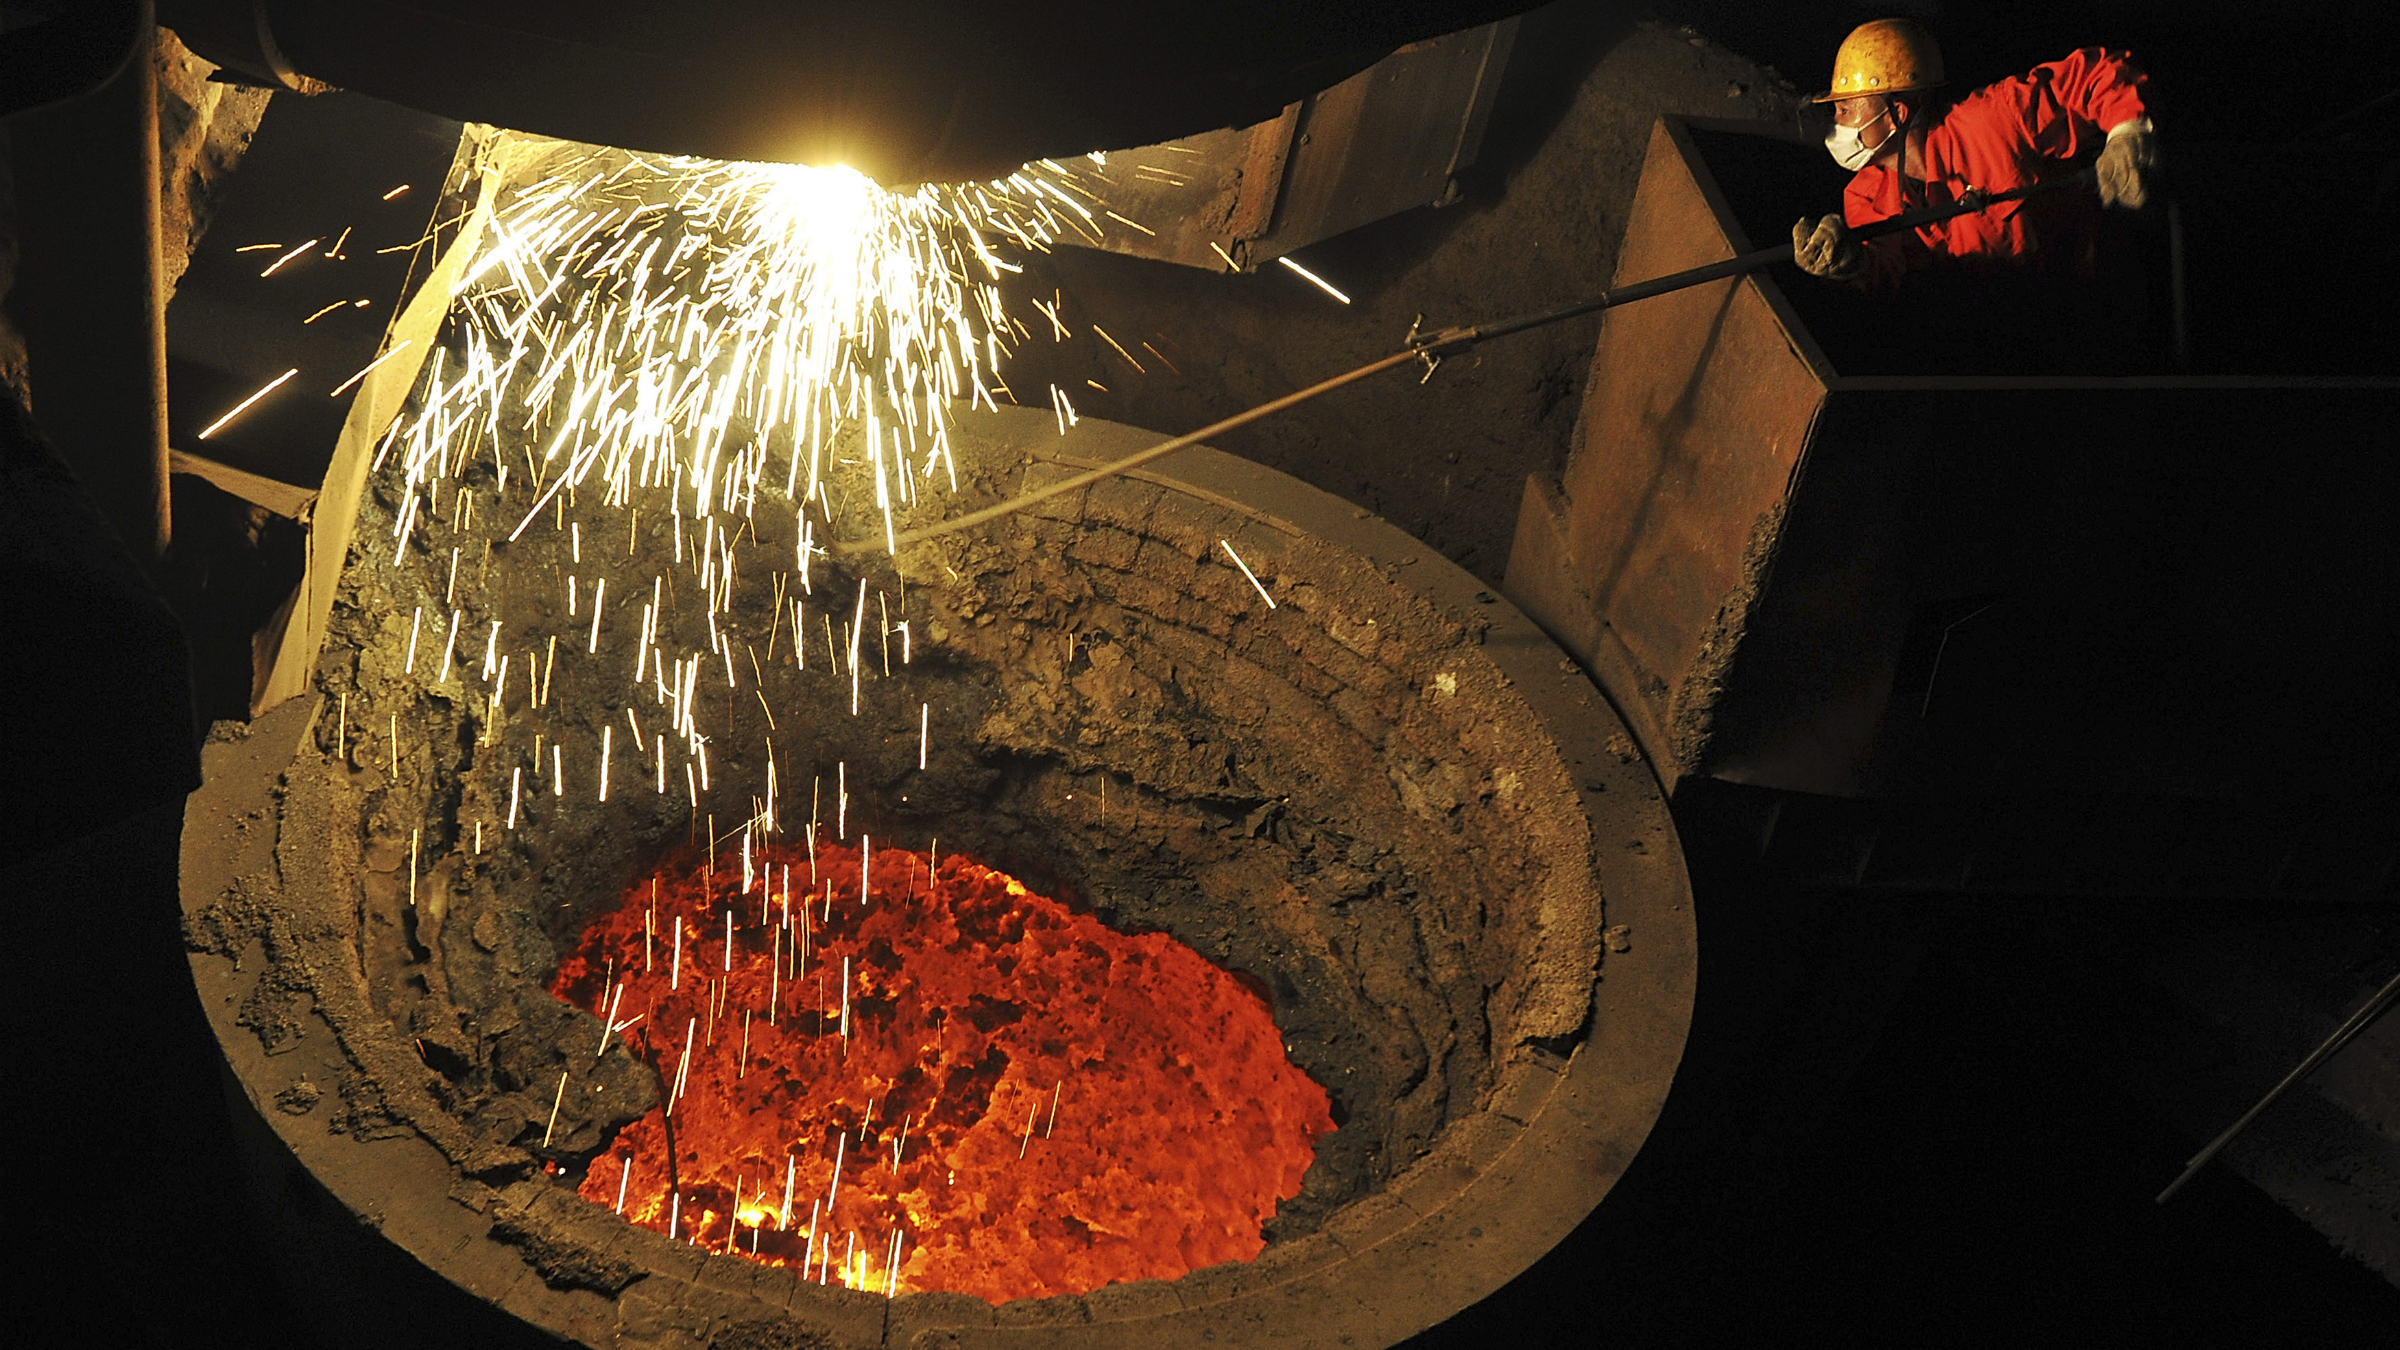 An employee works above a furnace containing molten steel at a factory of Dongbei Special Steel Group Co. Ltd. in Dalian, Liaoning province January 30, 2014. China's factory growth eased to an expected six-month low in January, hurt by weaker local and foreign demand, a survey showed, a soft start for the year that heightens worries of an economic slowdown. The official Purchasing Managers' Index (PMI) edged down to 50.5 in January from December's 51, the National Bureau of Statistics said on Saturday, in line with market expectations. Picture taken January 30, 2014. REUTERS/China Daily